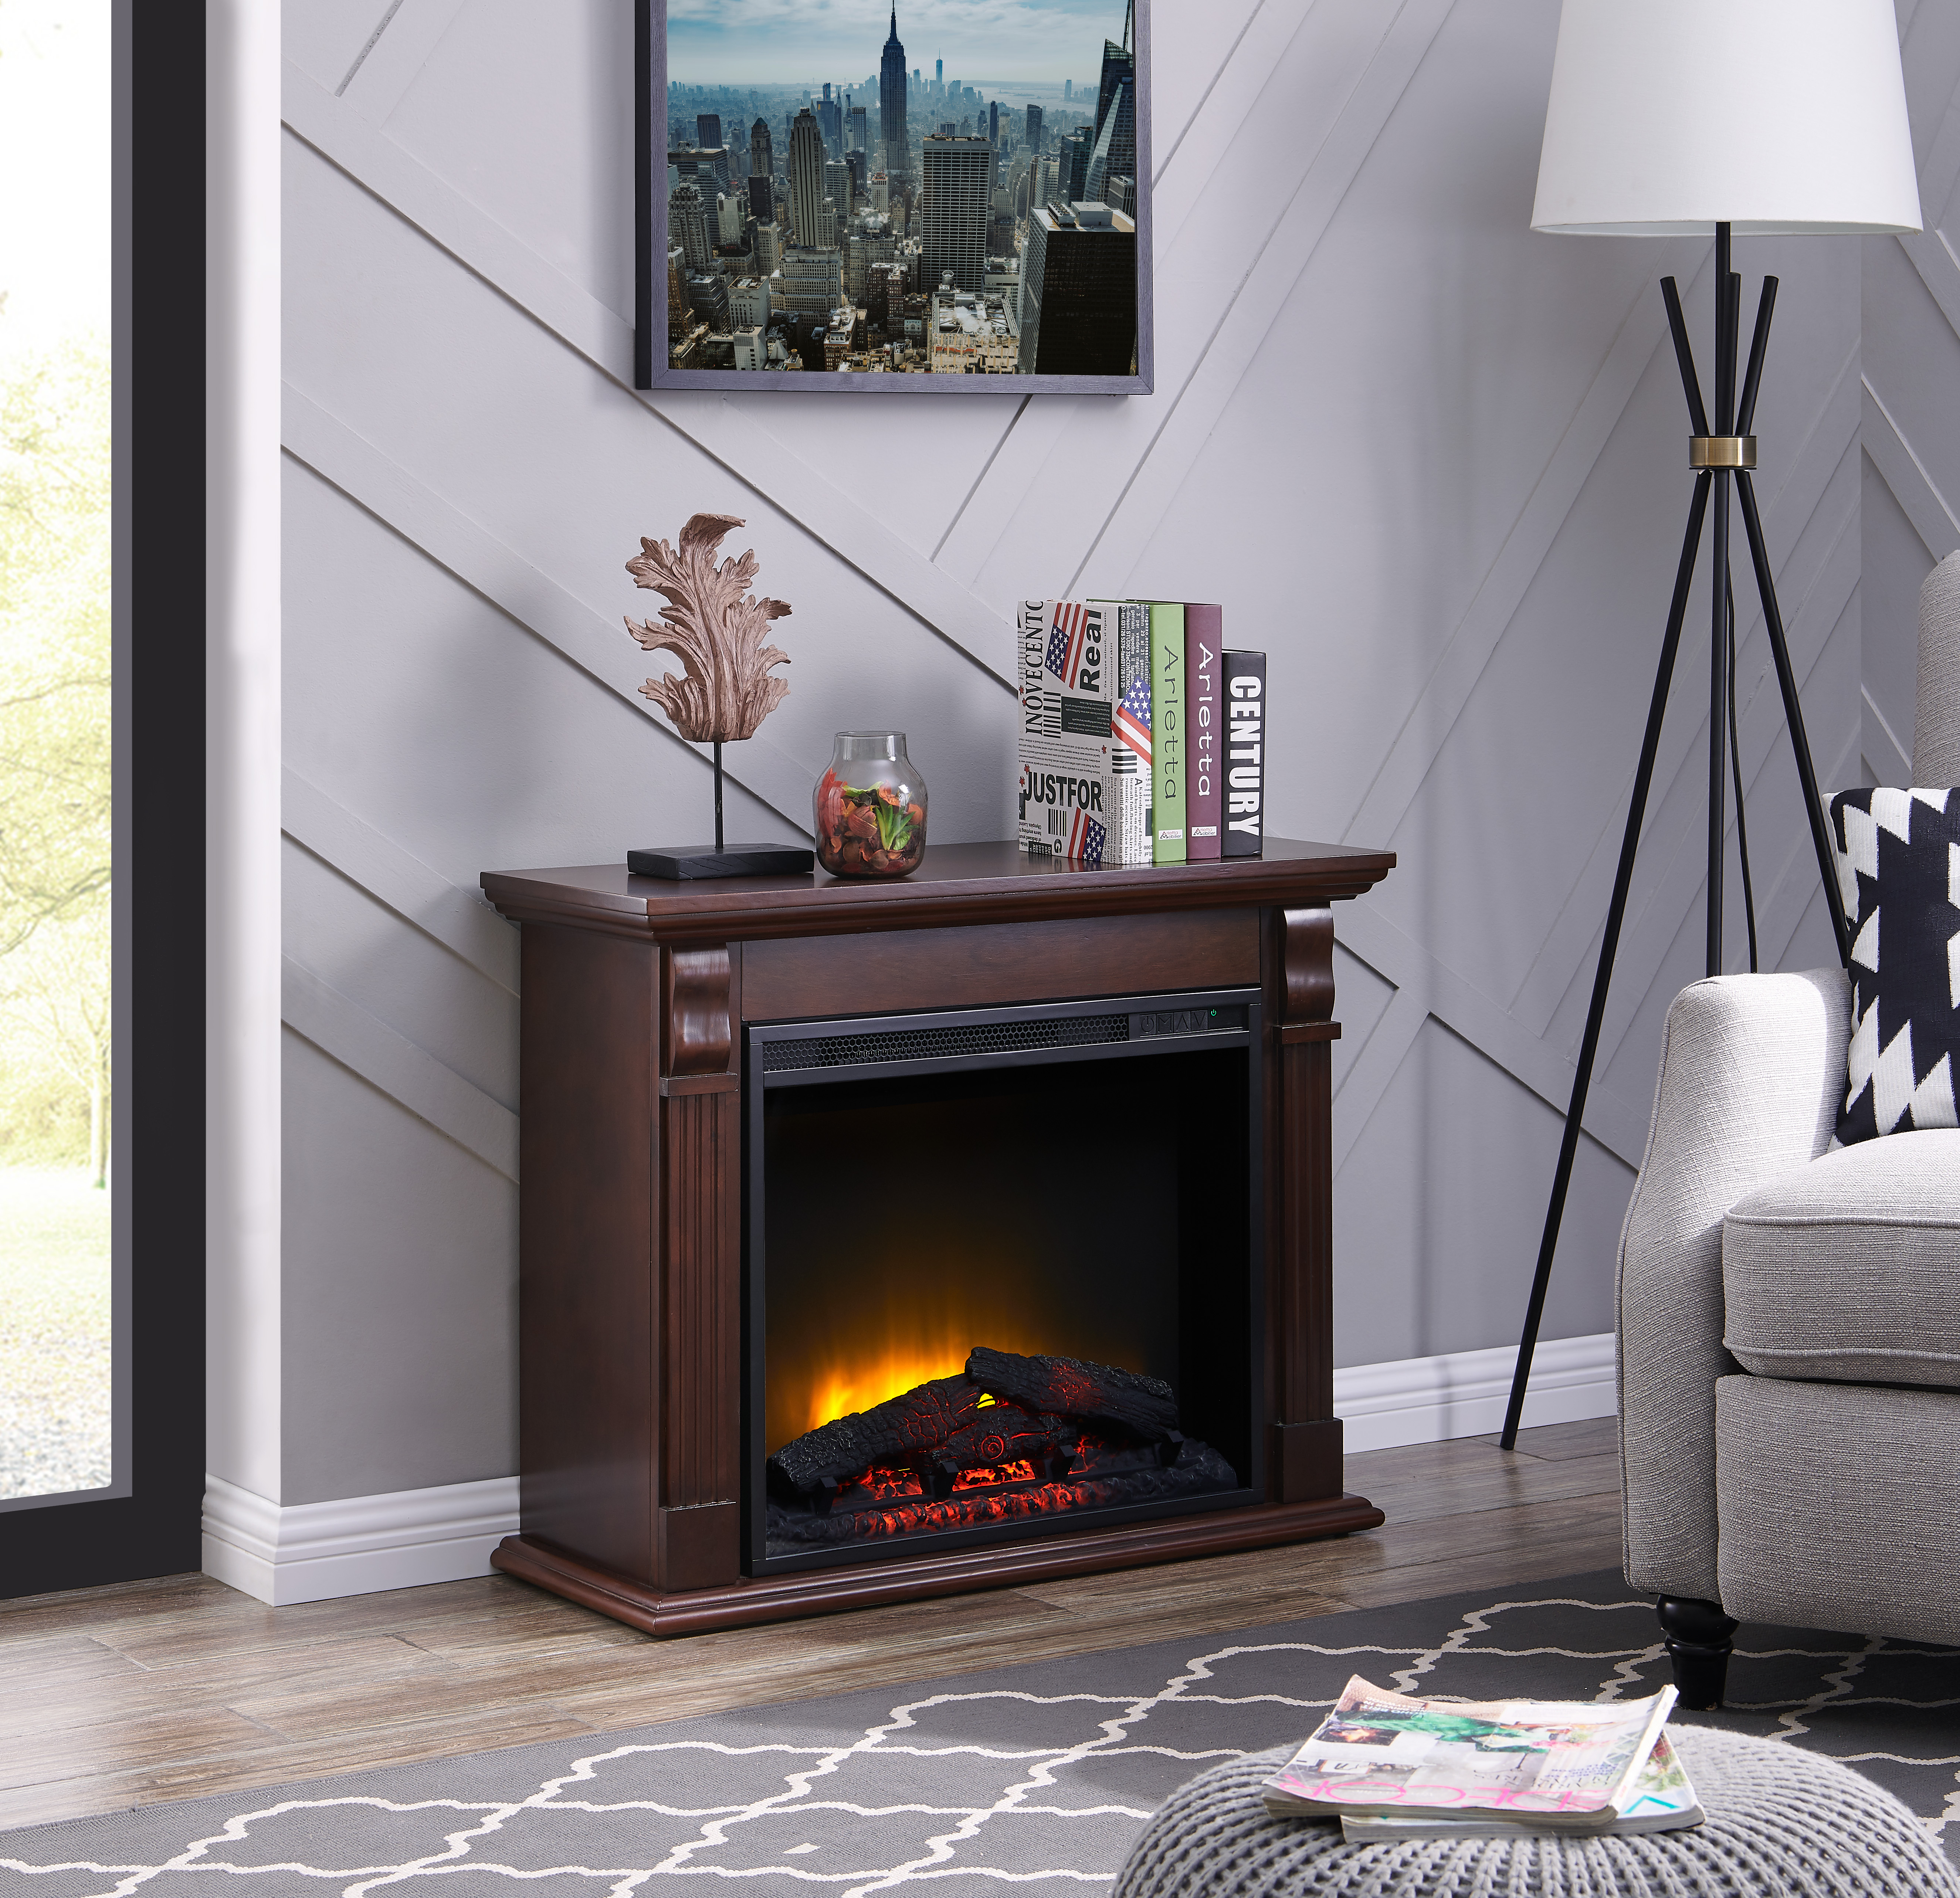 Big Lots Fireplaces Clearance Beautiful Bold Flame 33 46 Inch Electric Fireplace In Chestnut